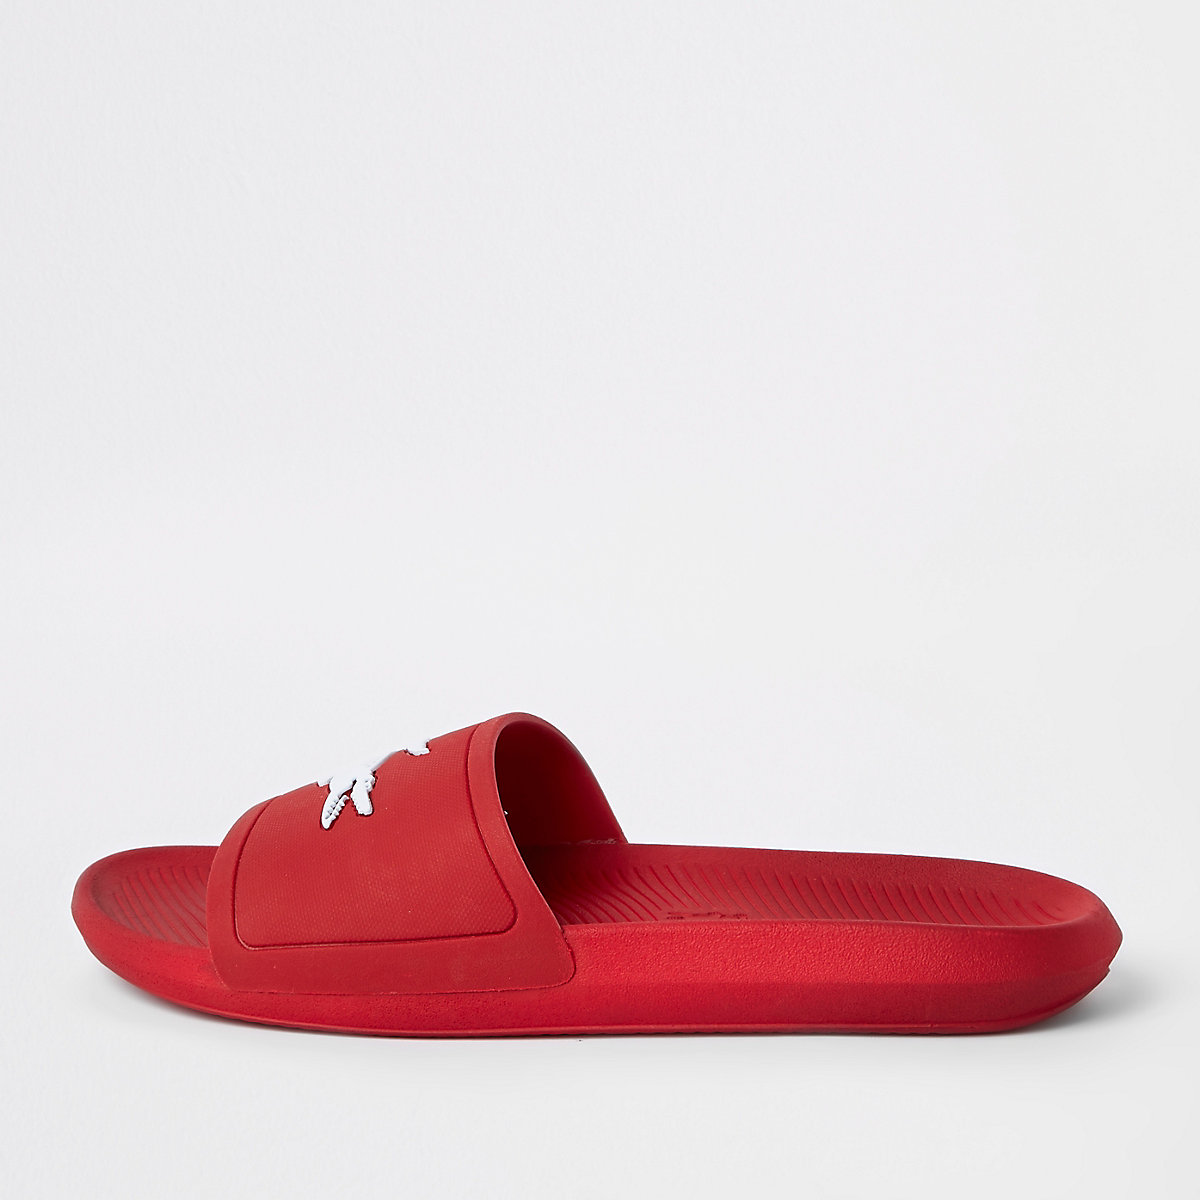 Lacoste red sliders